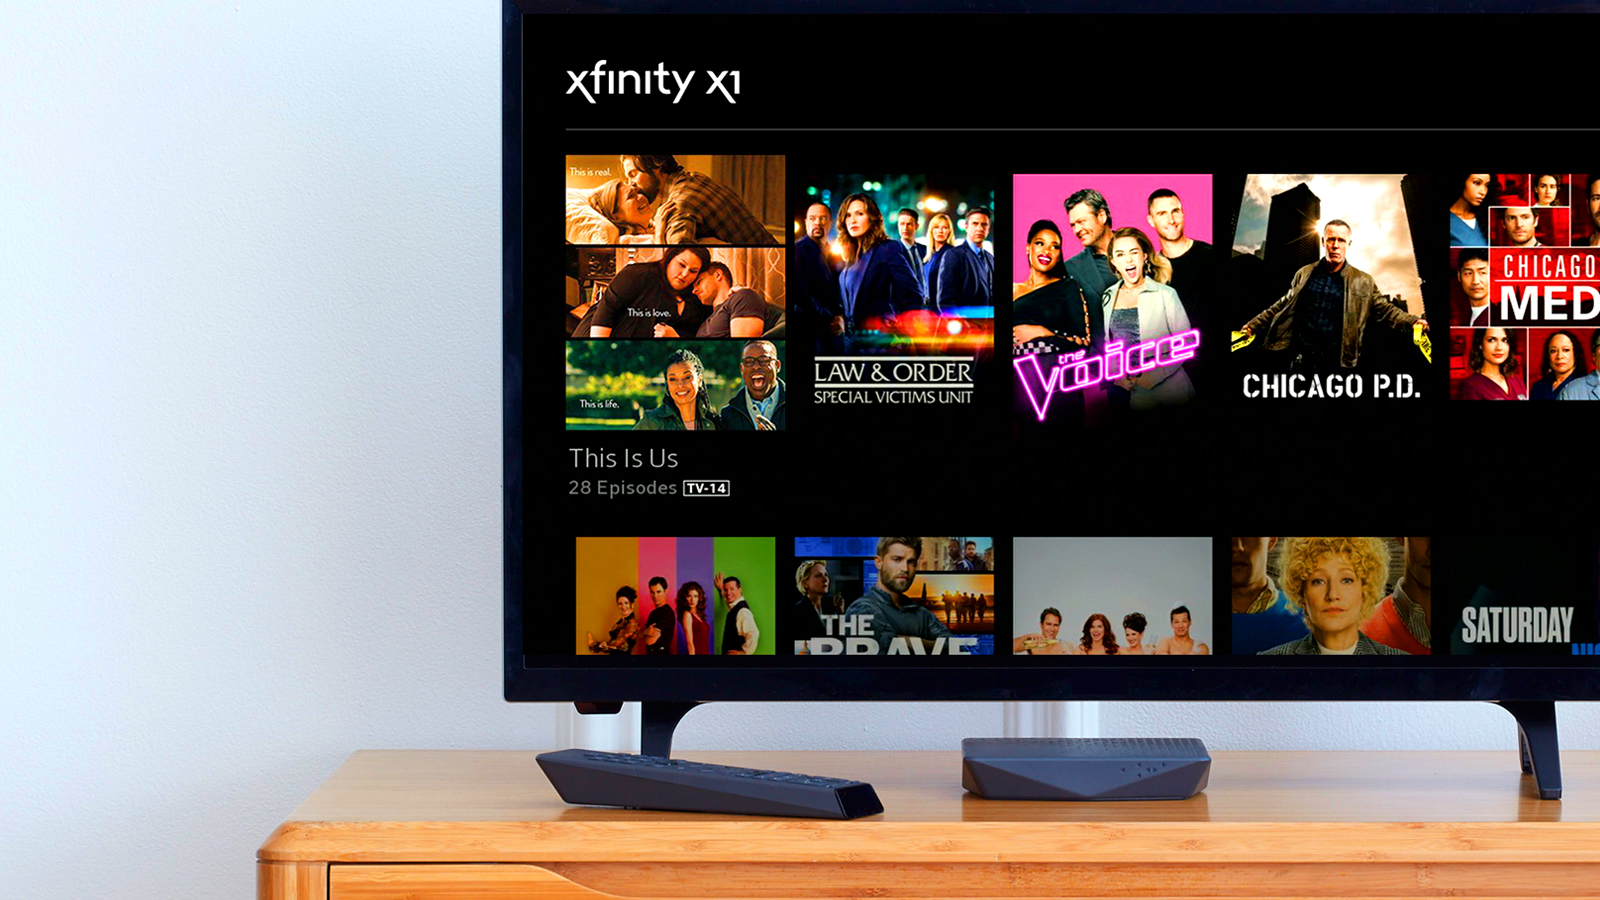 Comcast and Fandango enable movie ticket buying… if you are watching a TV